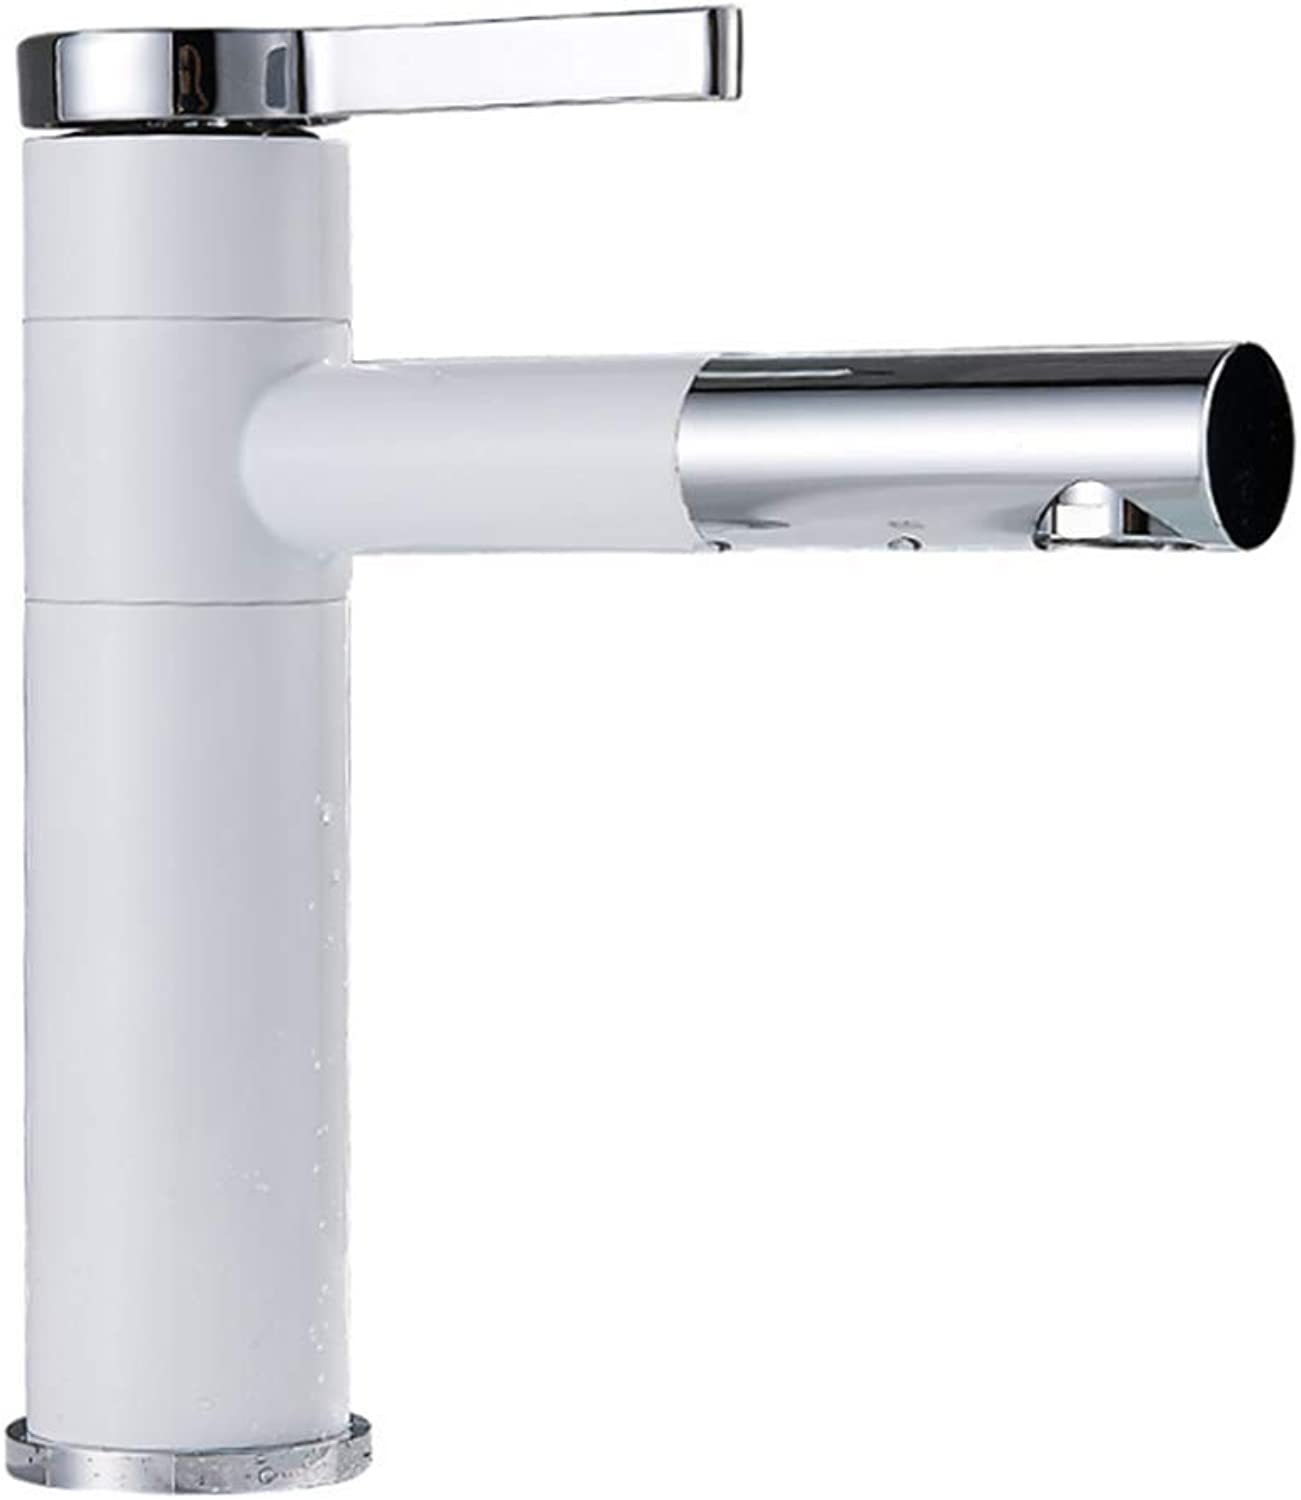 Kitchen Taps Faucet Modern Kitchen Sink Taps Stainless Steel304 Stainless Steel Basin Faucet Single Hole Toilet Hand Wash Basin Cold and Hot Water Faucet